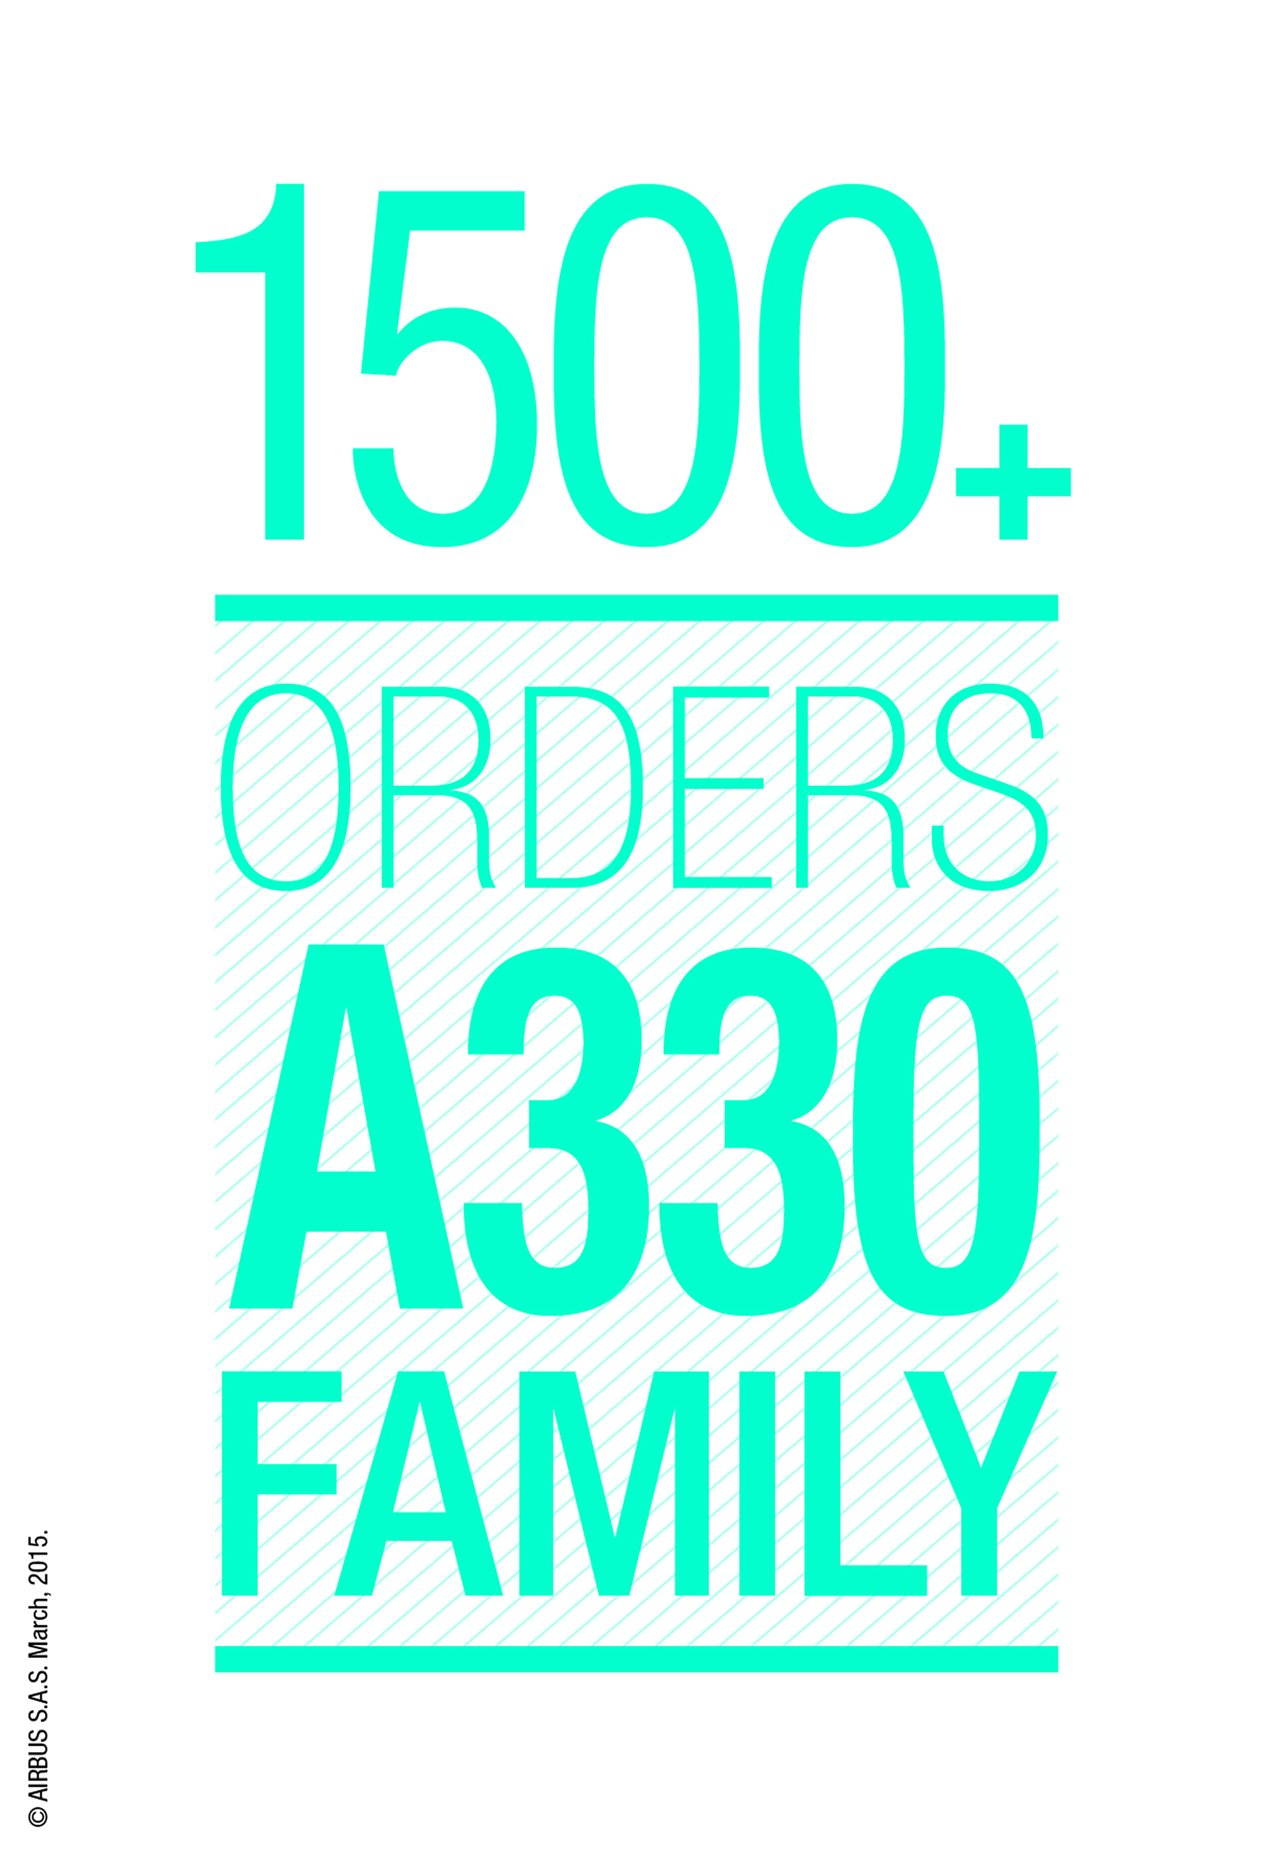 Over 1,500 orders for the versatile A330. Growing market endorsement for most popular widebody aircraft